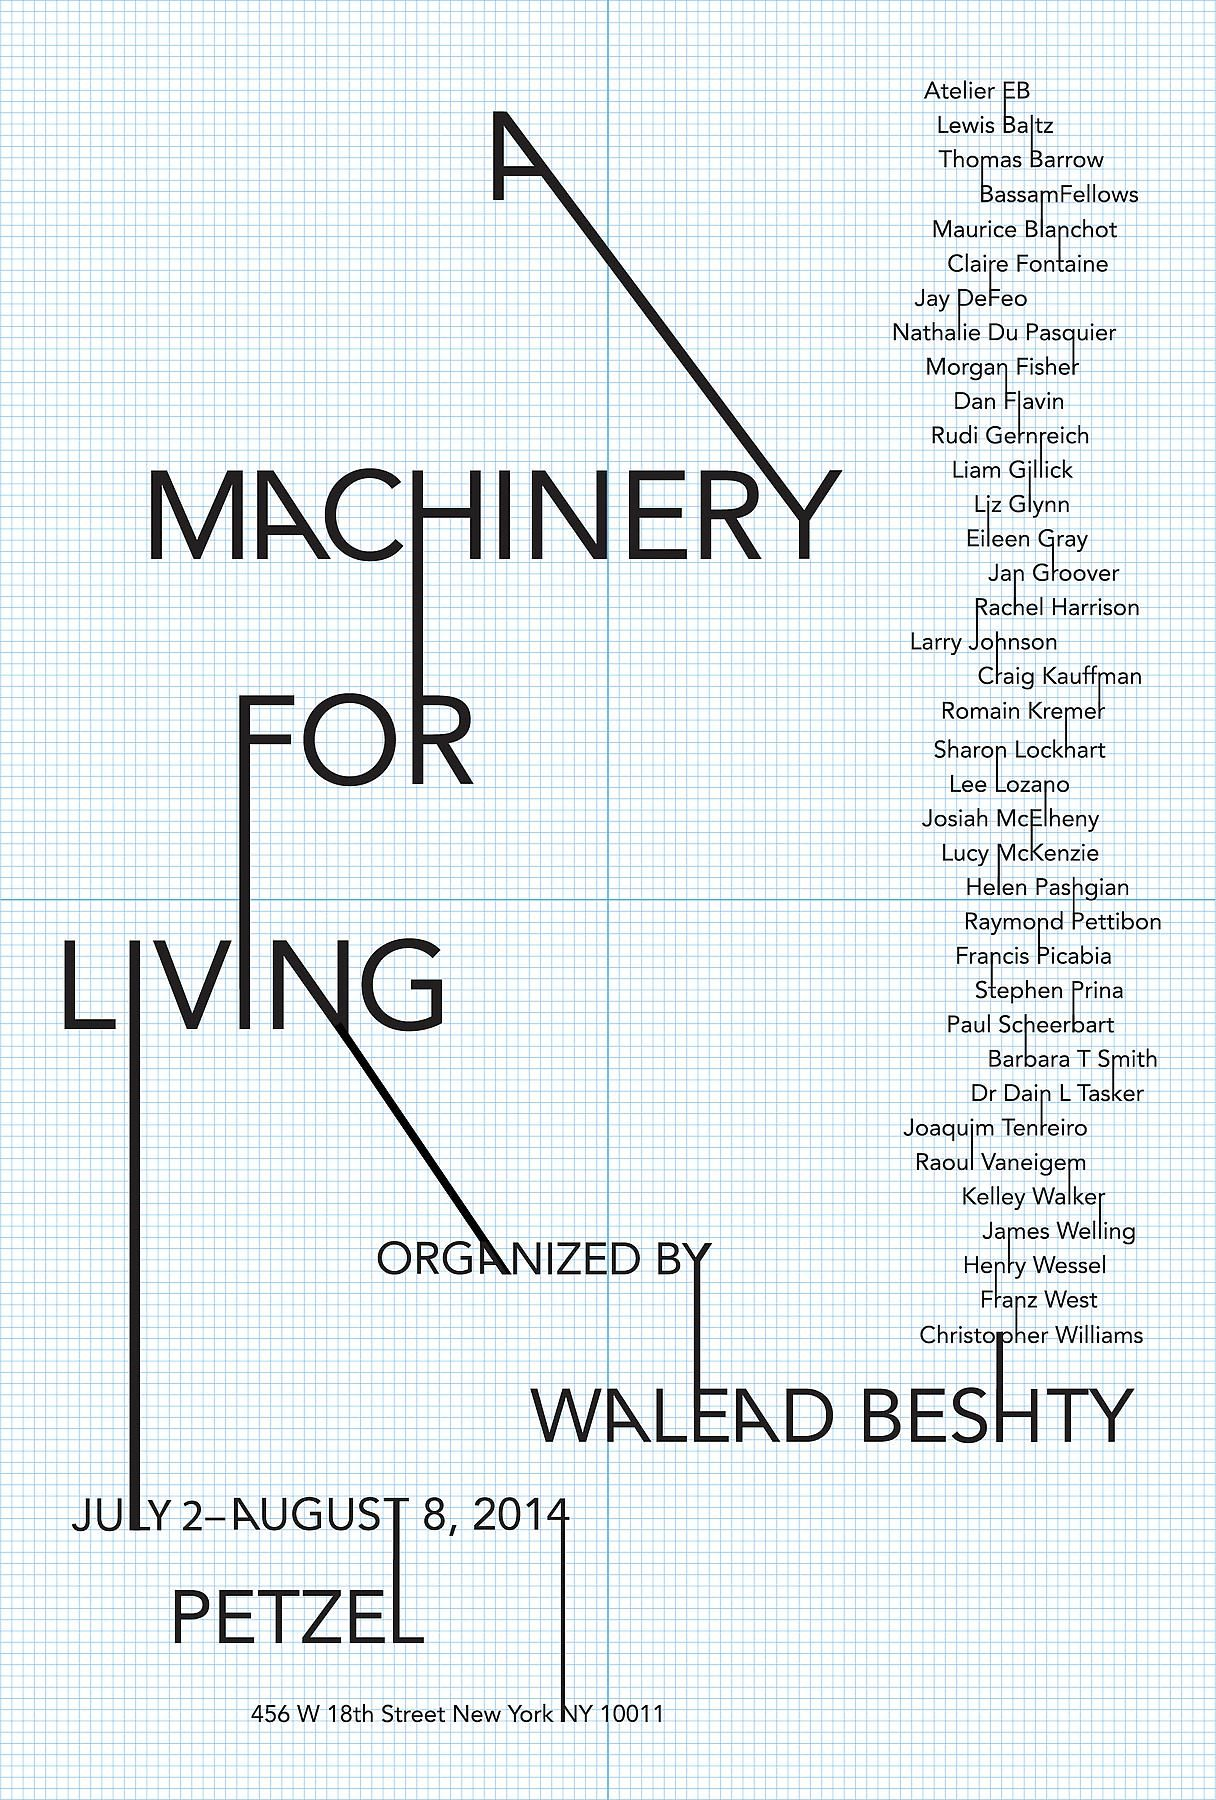 A Machinery for Living Organized by Walead Beshty